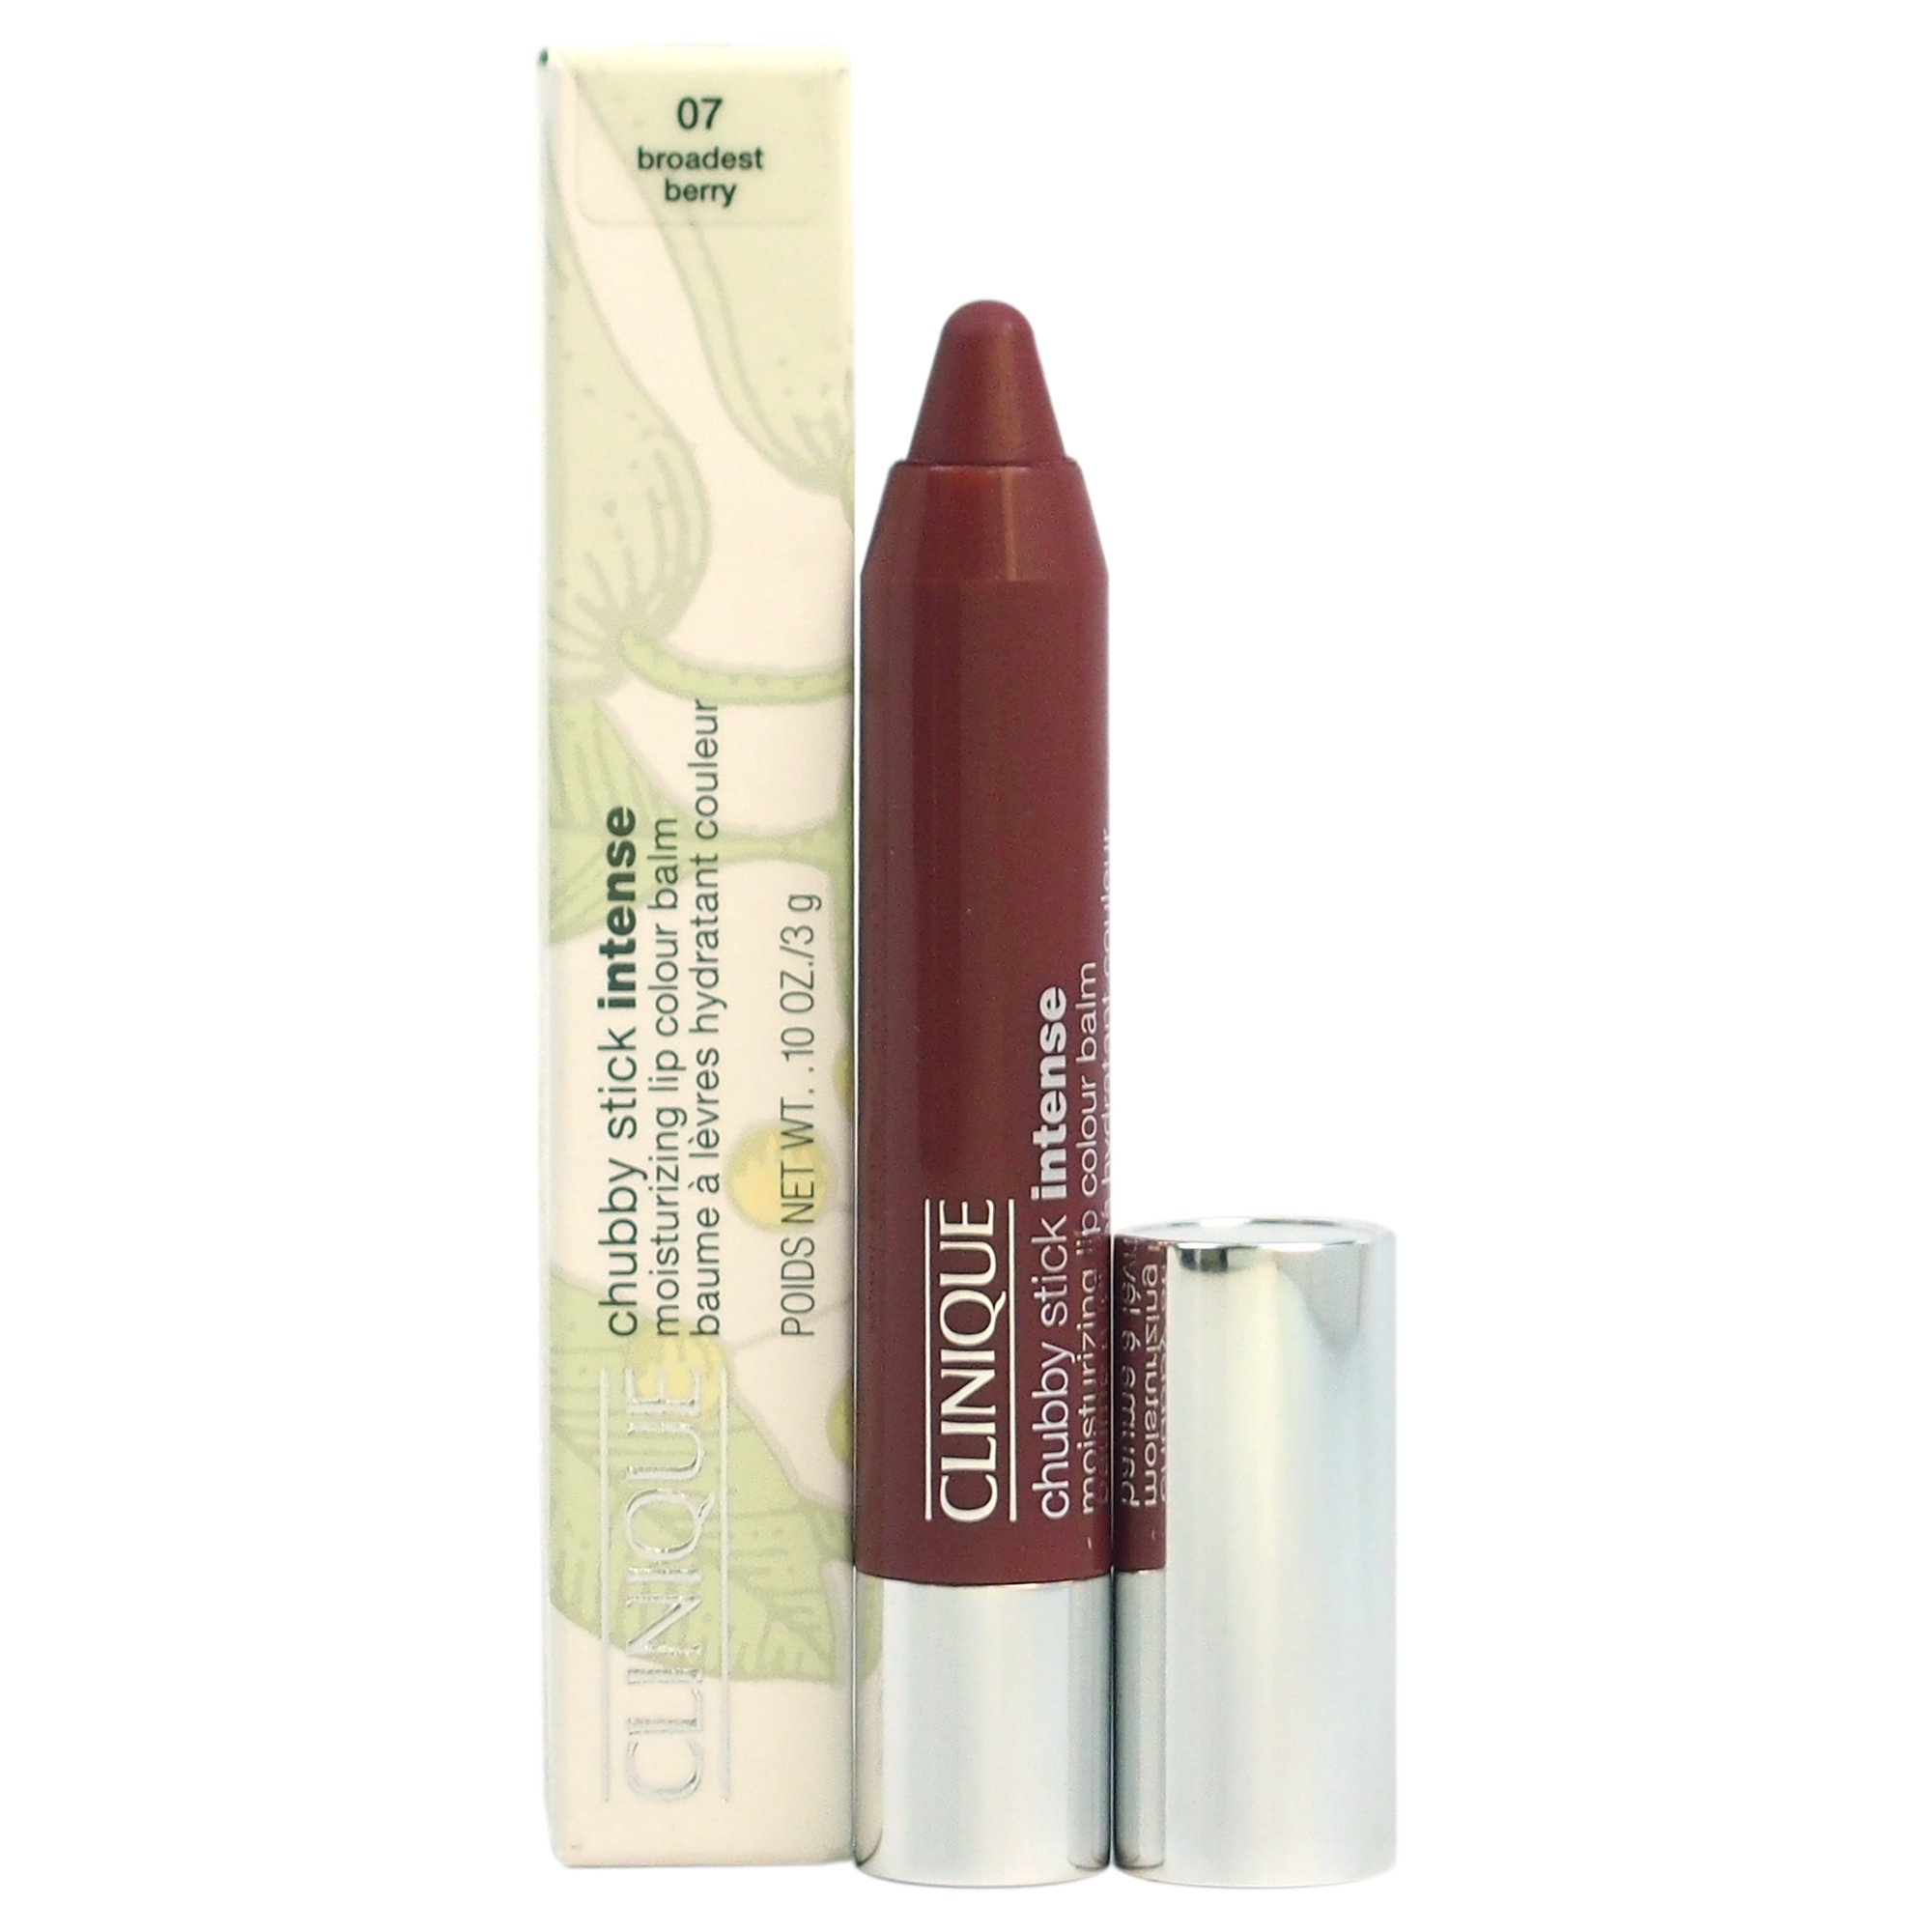 Clinique Chubby Stick Intense Moisturizing Lip Color Balm, No. 07 Broadest Berry, 0.1 Ounce by Clinique